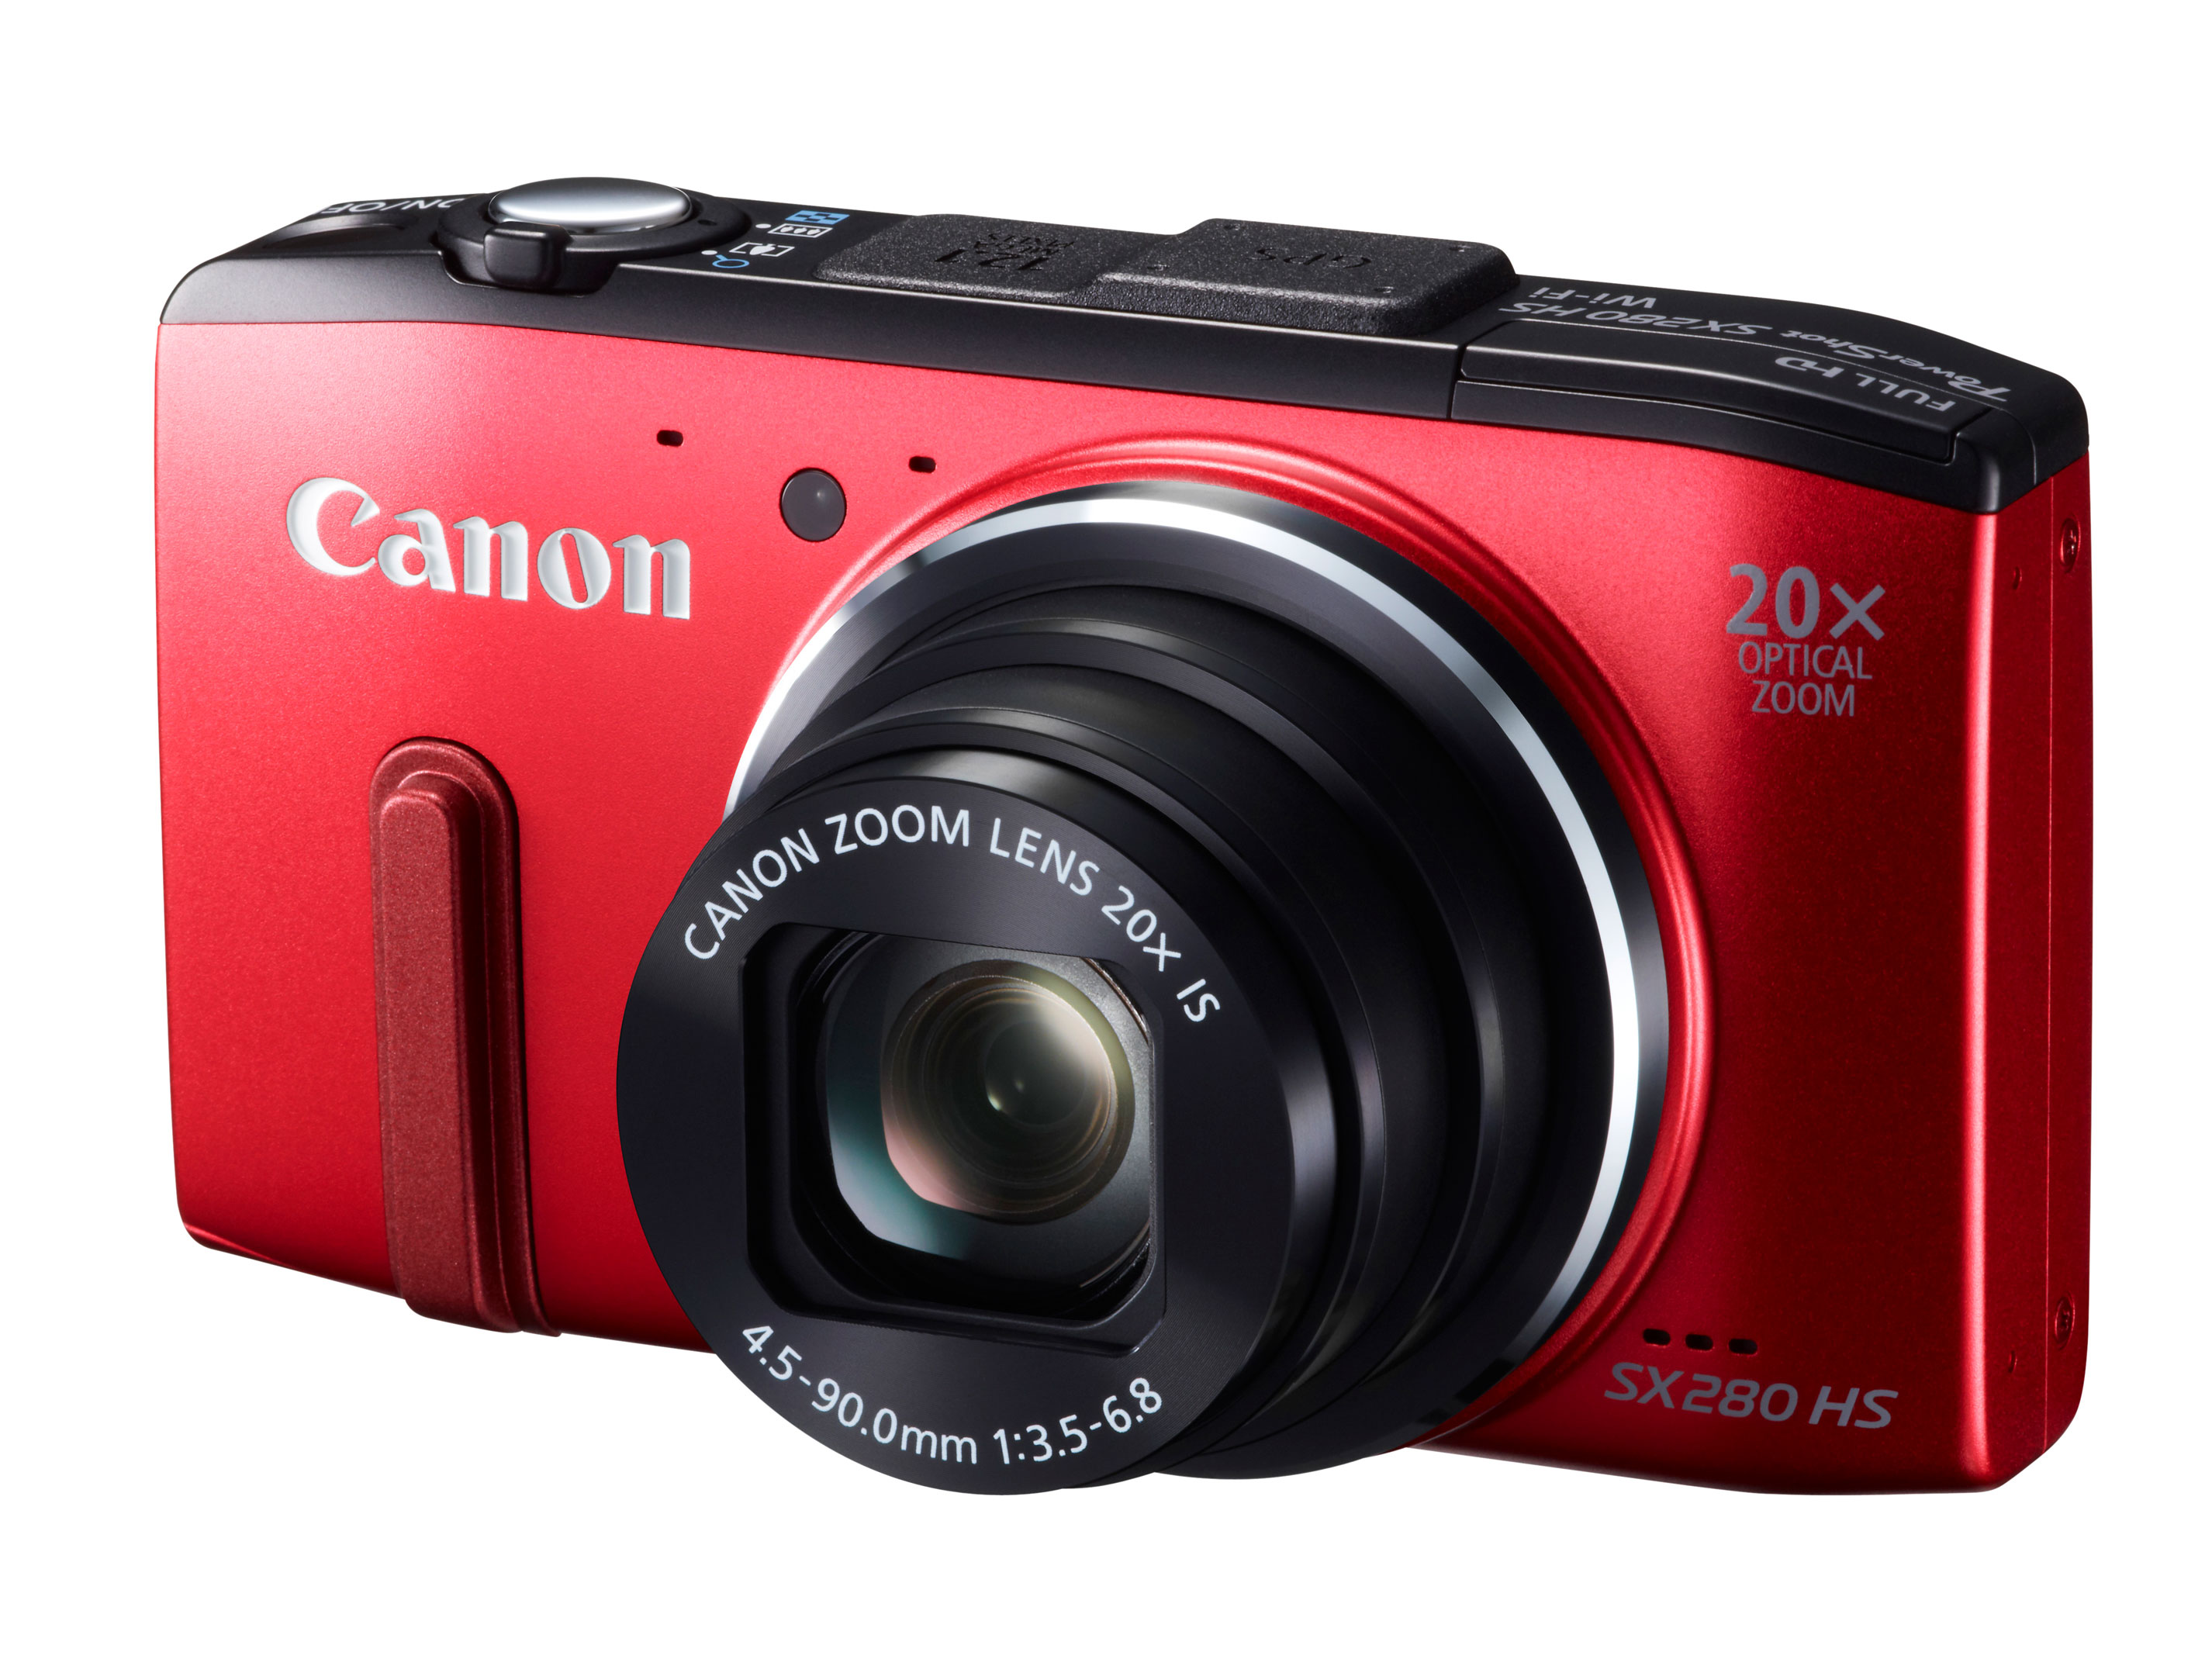 Canon PowerShot SX280 HS | Digital Photography live |Canon Powershot Sx280